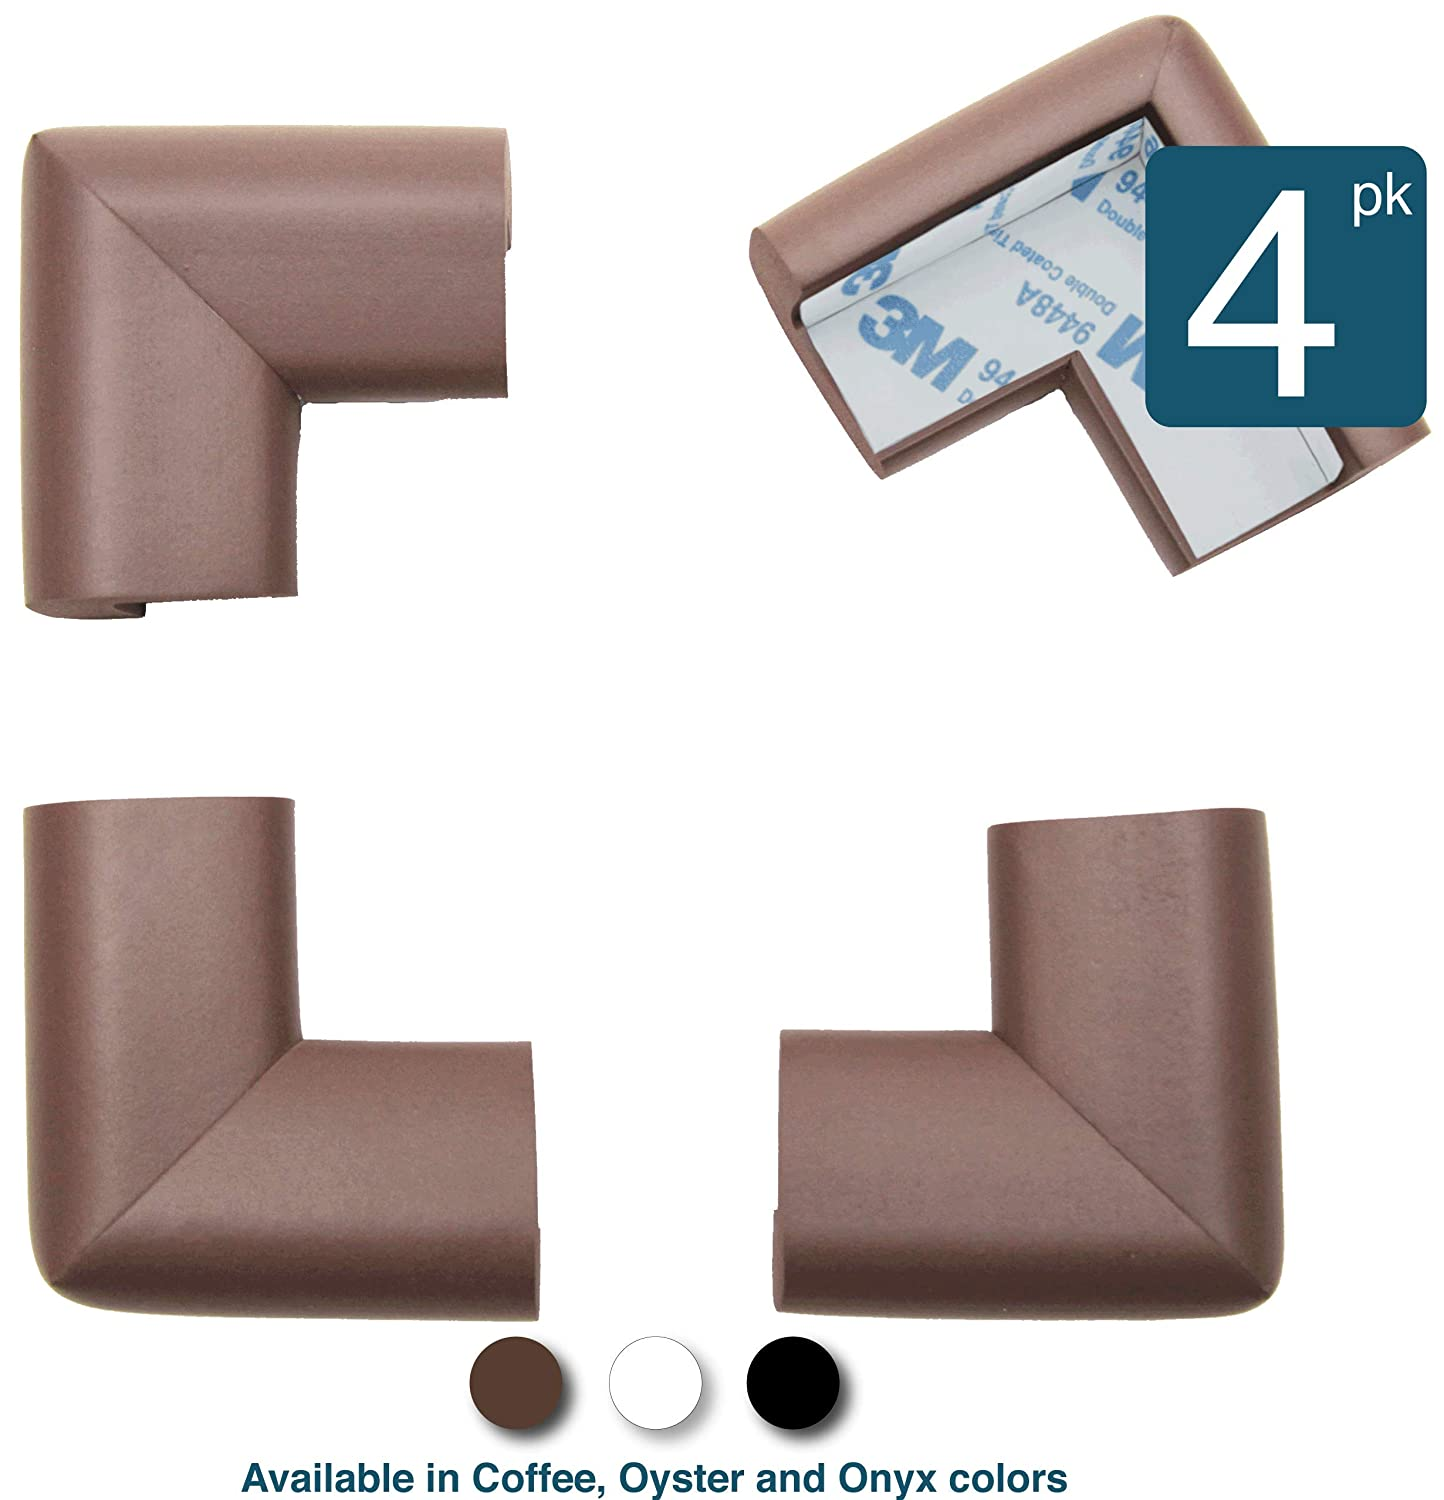 16-Piece Oyster Pre-Taped Foam Rubber Table Furniture Bumper Child Proofing Safe Corner Cushion Roving Cove White Soft Caring Baby Corners Baby Safety Corner Guards Edge Protectors